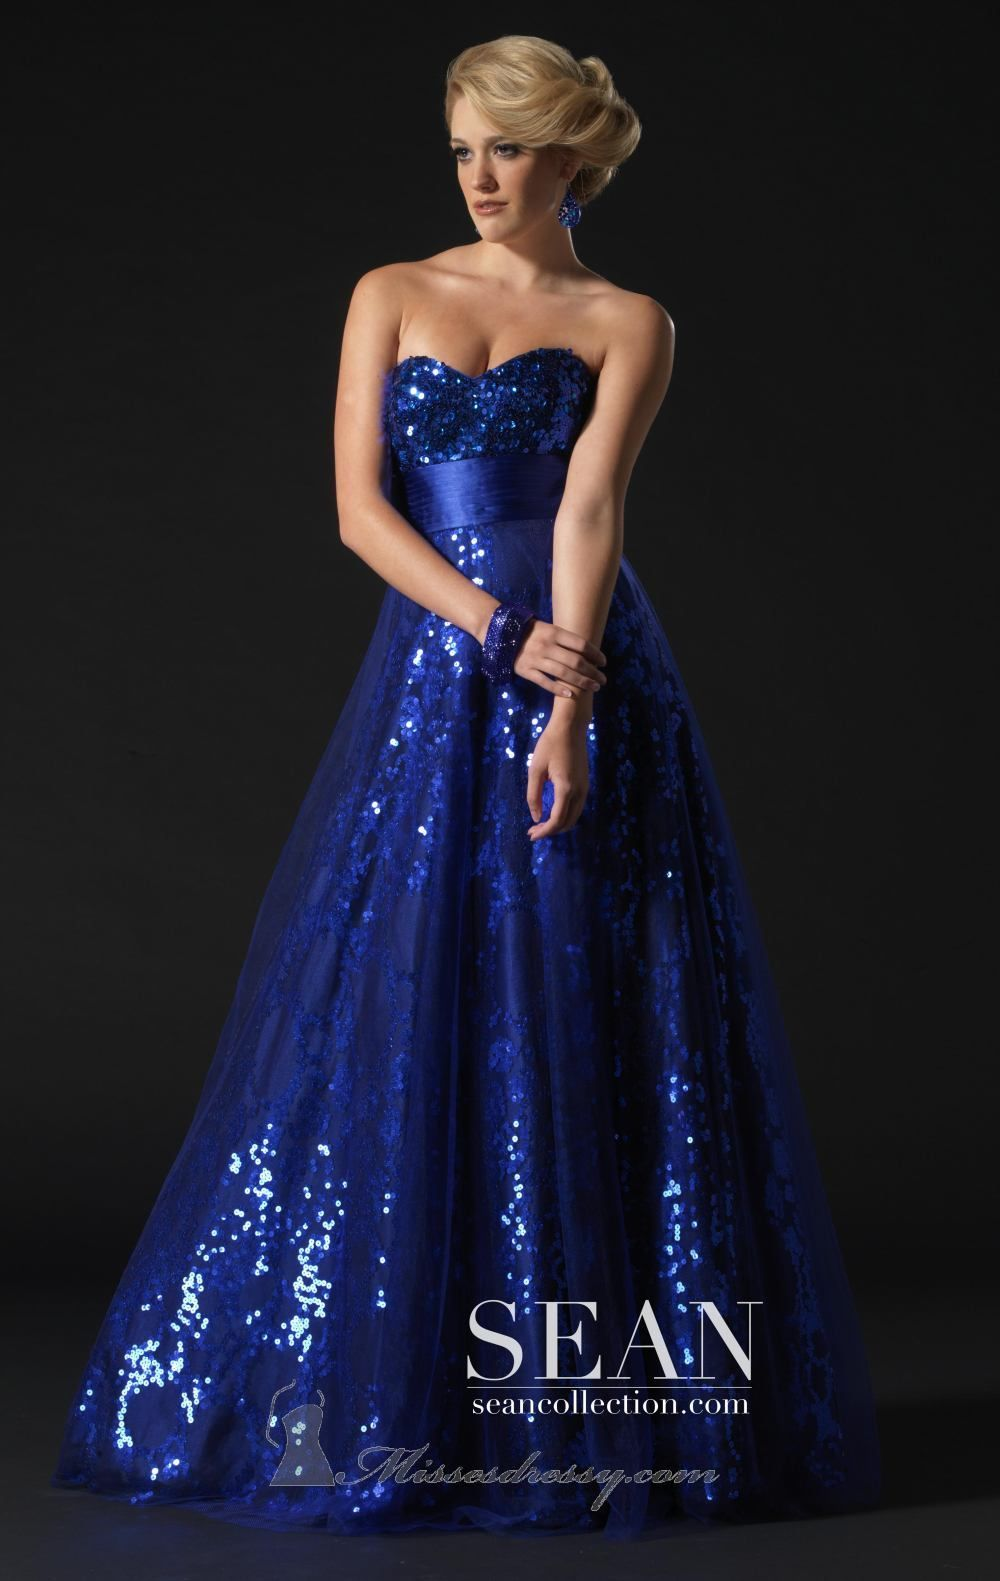 Royal blue sparkly gown i adore this dress dress